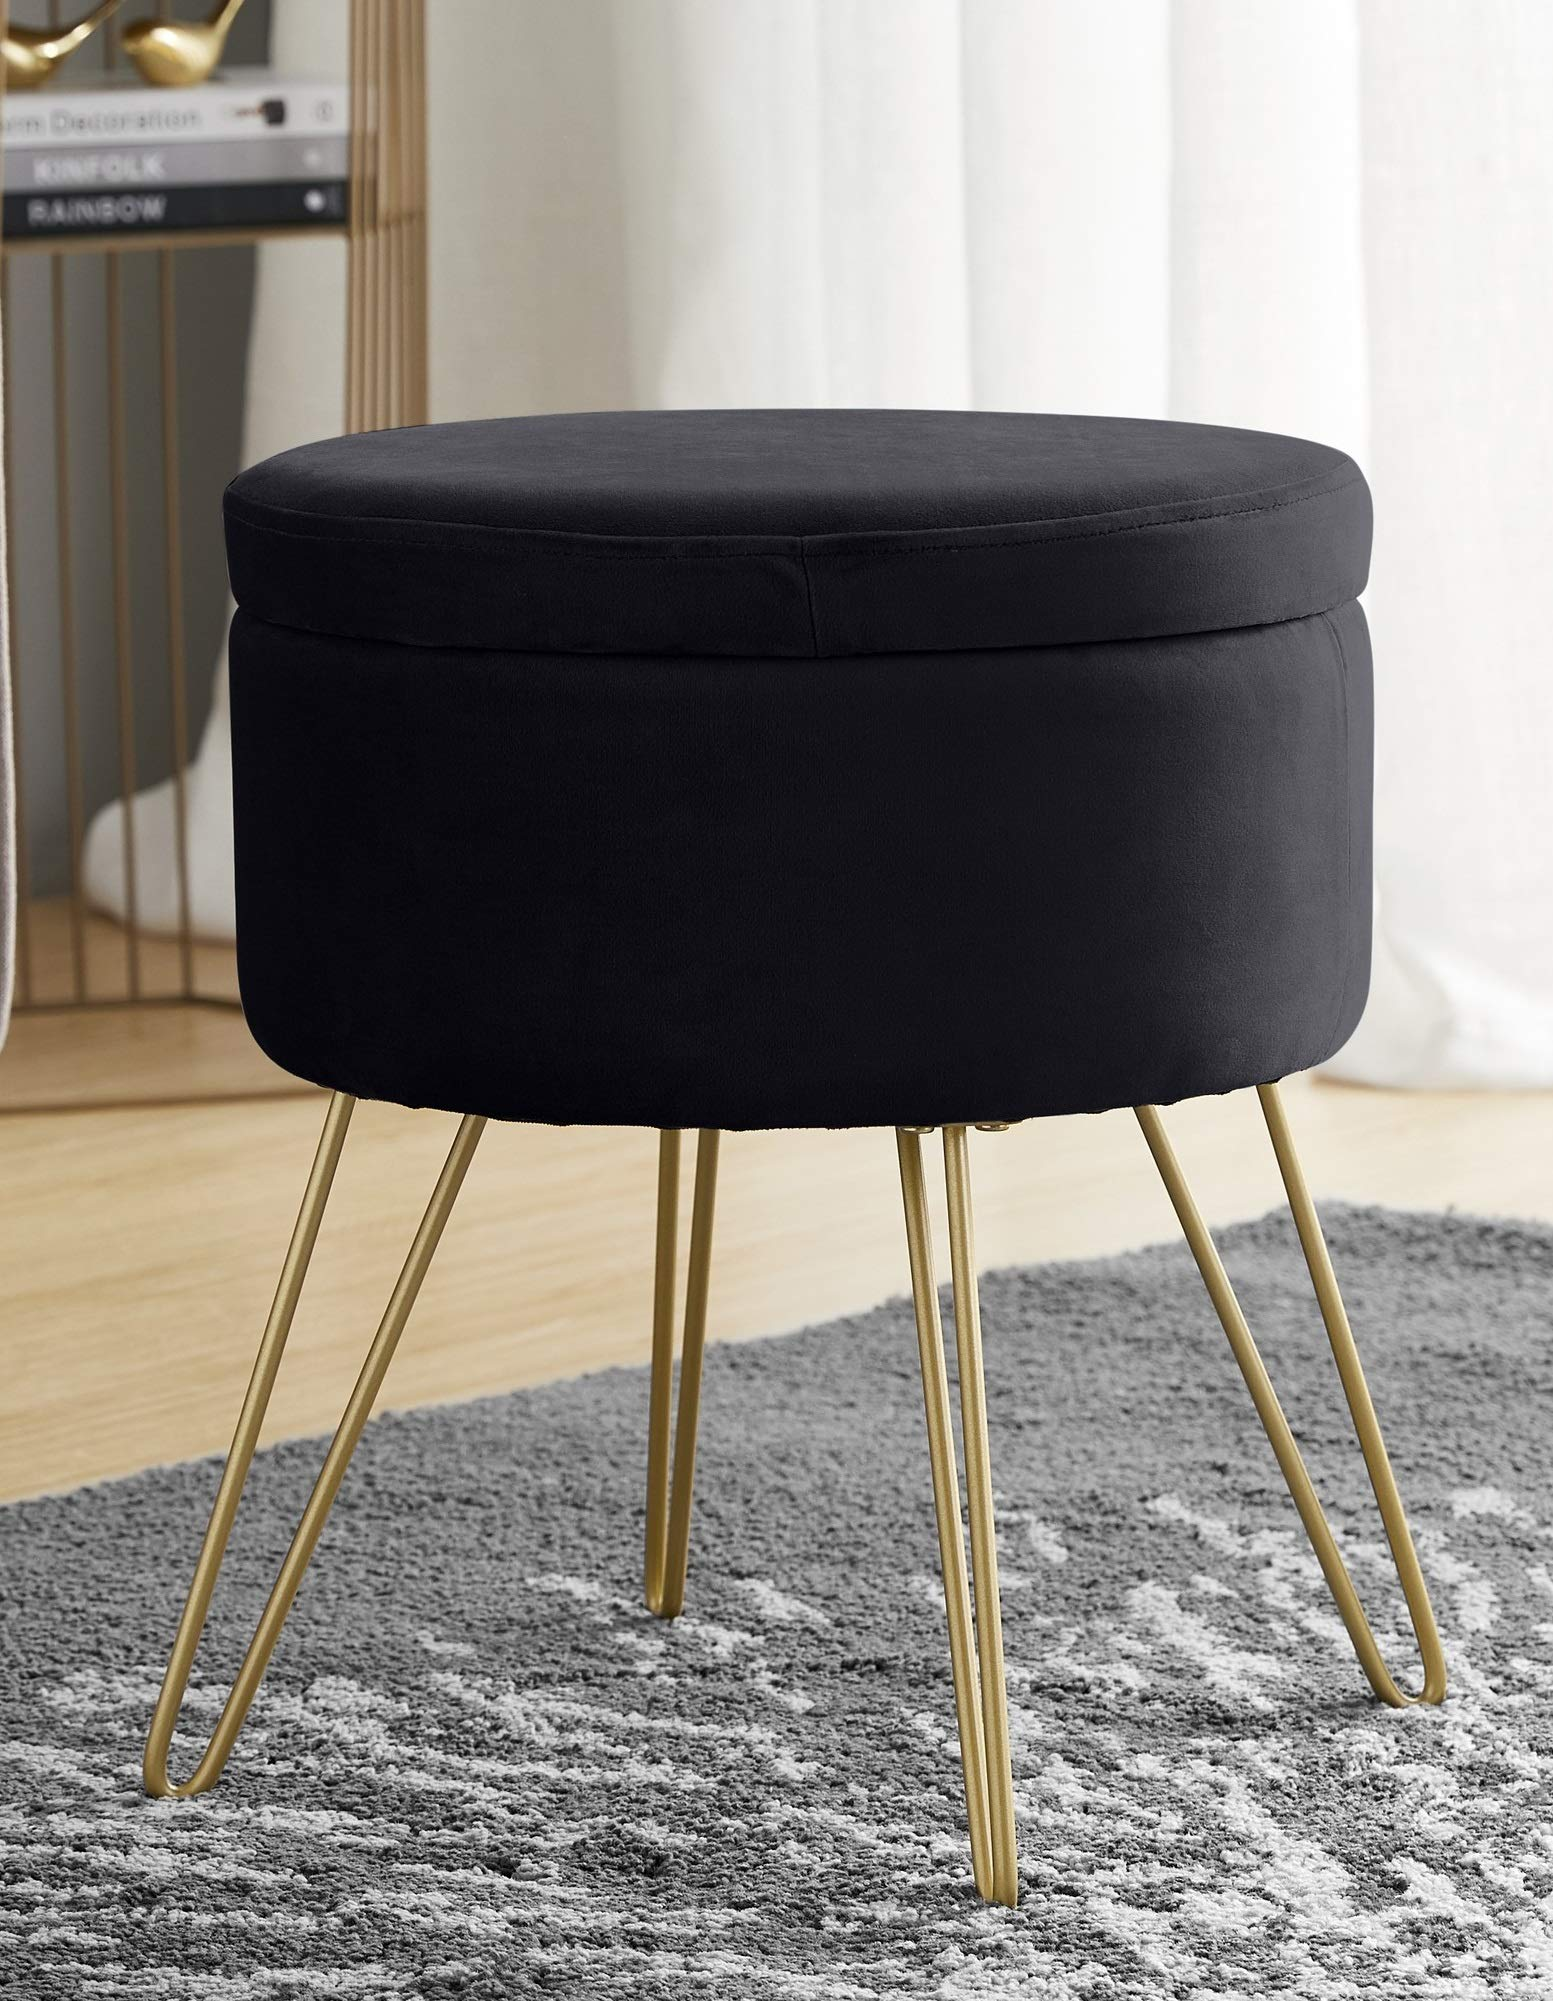 Ornavo Home Modern Round Velvet Storage Ottoman Foot Rest Stool/Seat with Gold Metal Legs & Tray Top Coffee Table - Black by Ornavo Home